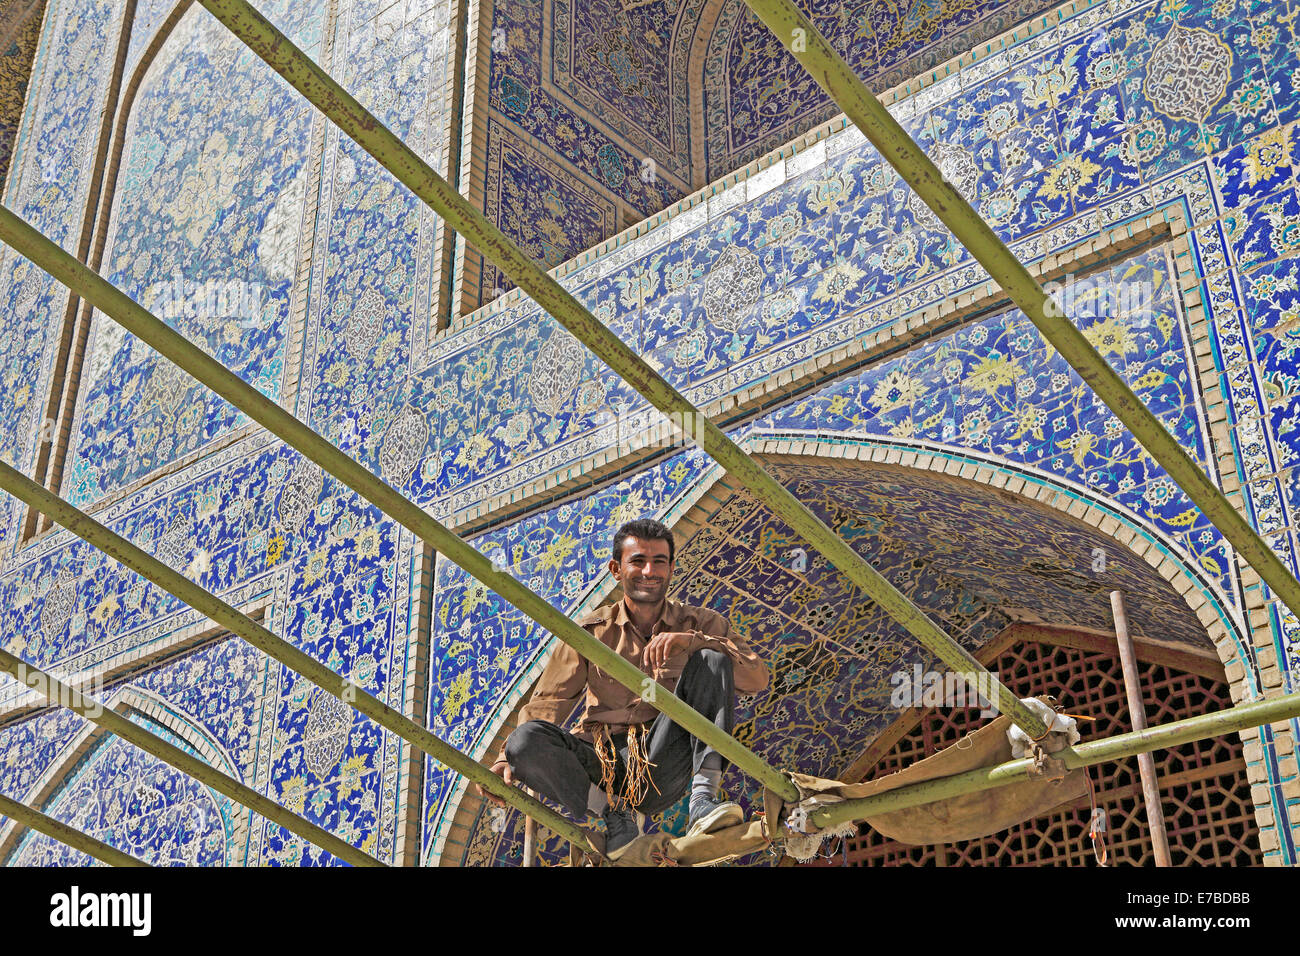 Scaffolder preparing sun protection for the Friday prayer, Imam Mosque, Isfahan, Isfahan Province, Persia, Iran - Stock Image